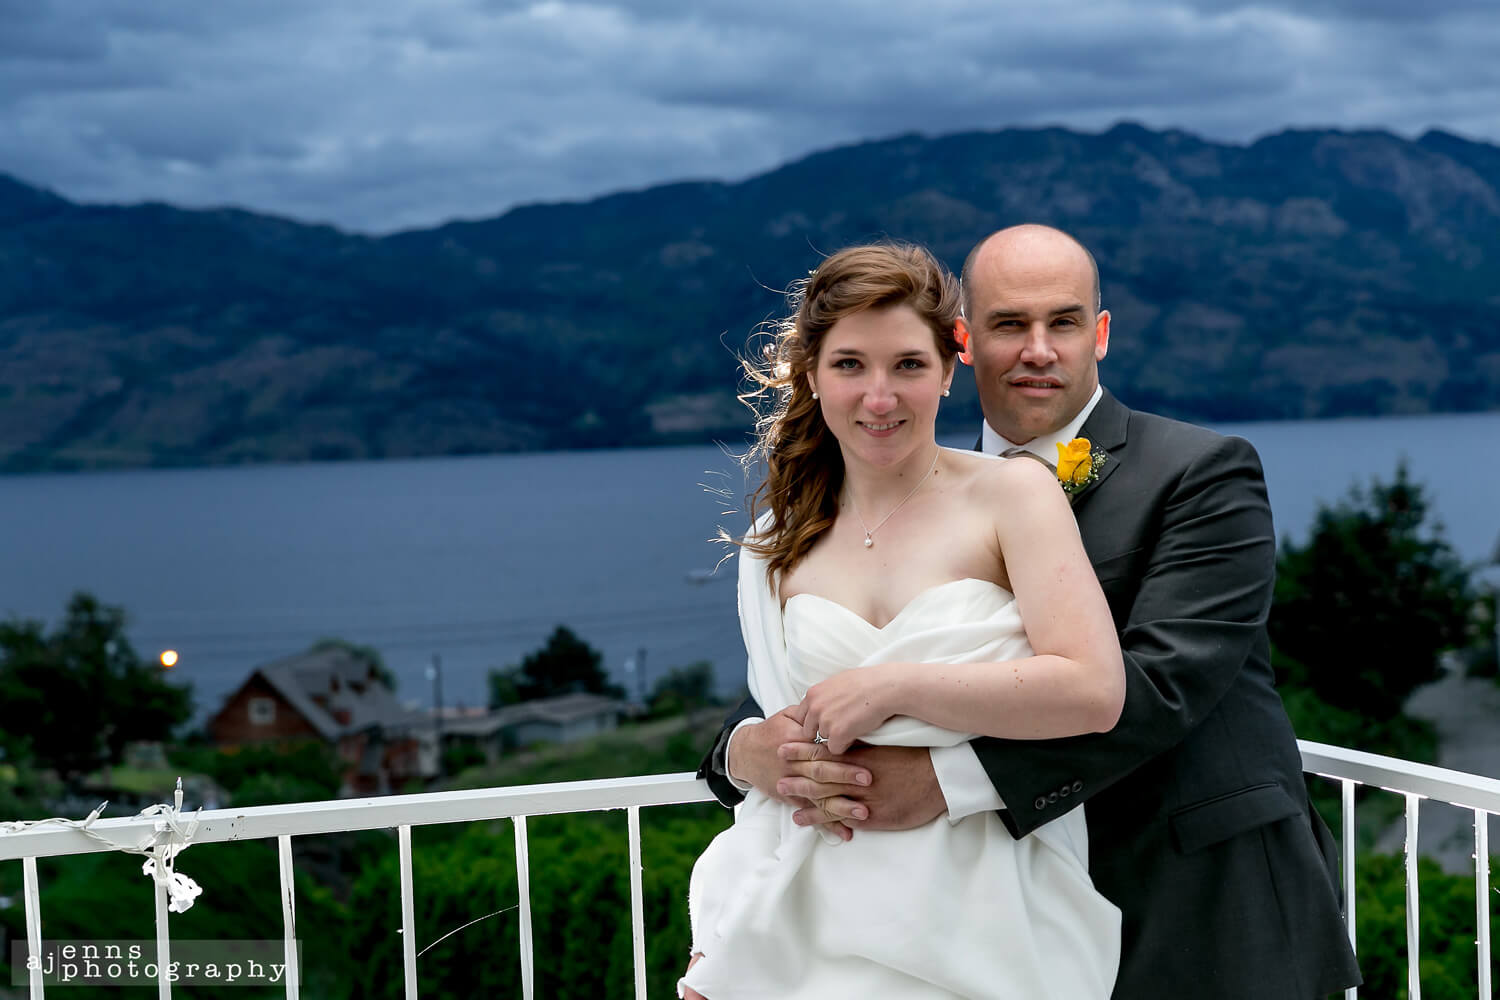 the bride and groom being back lit on the deck over looking the lake